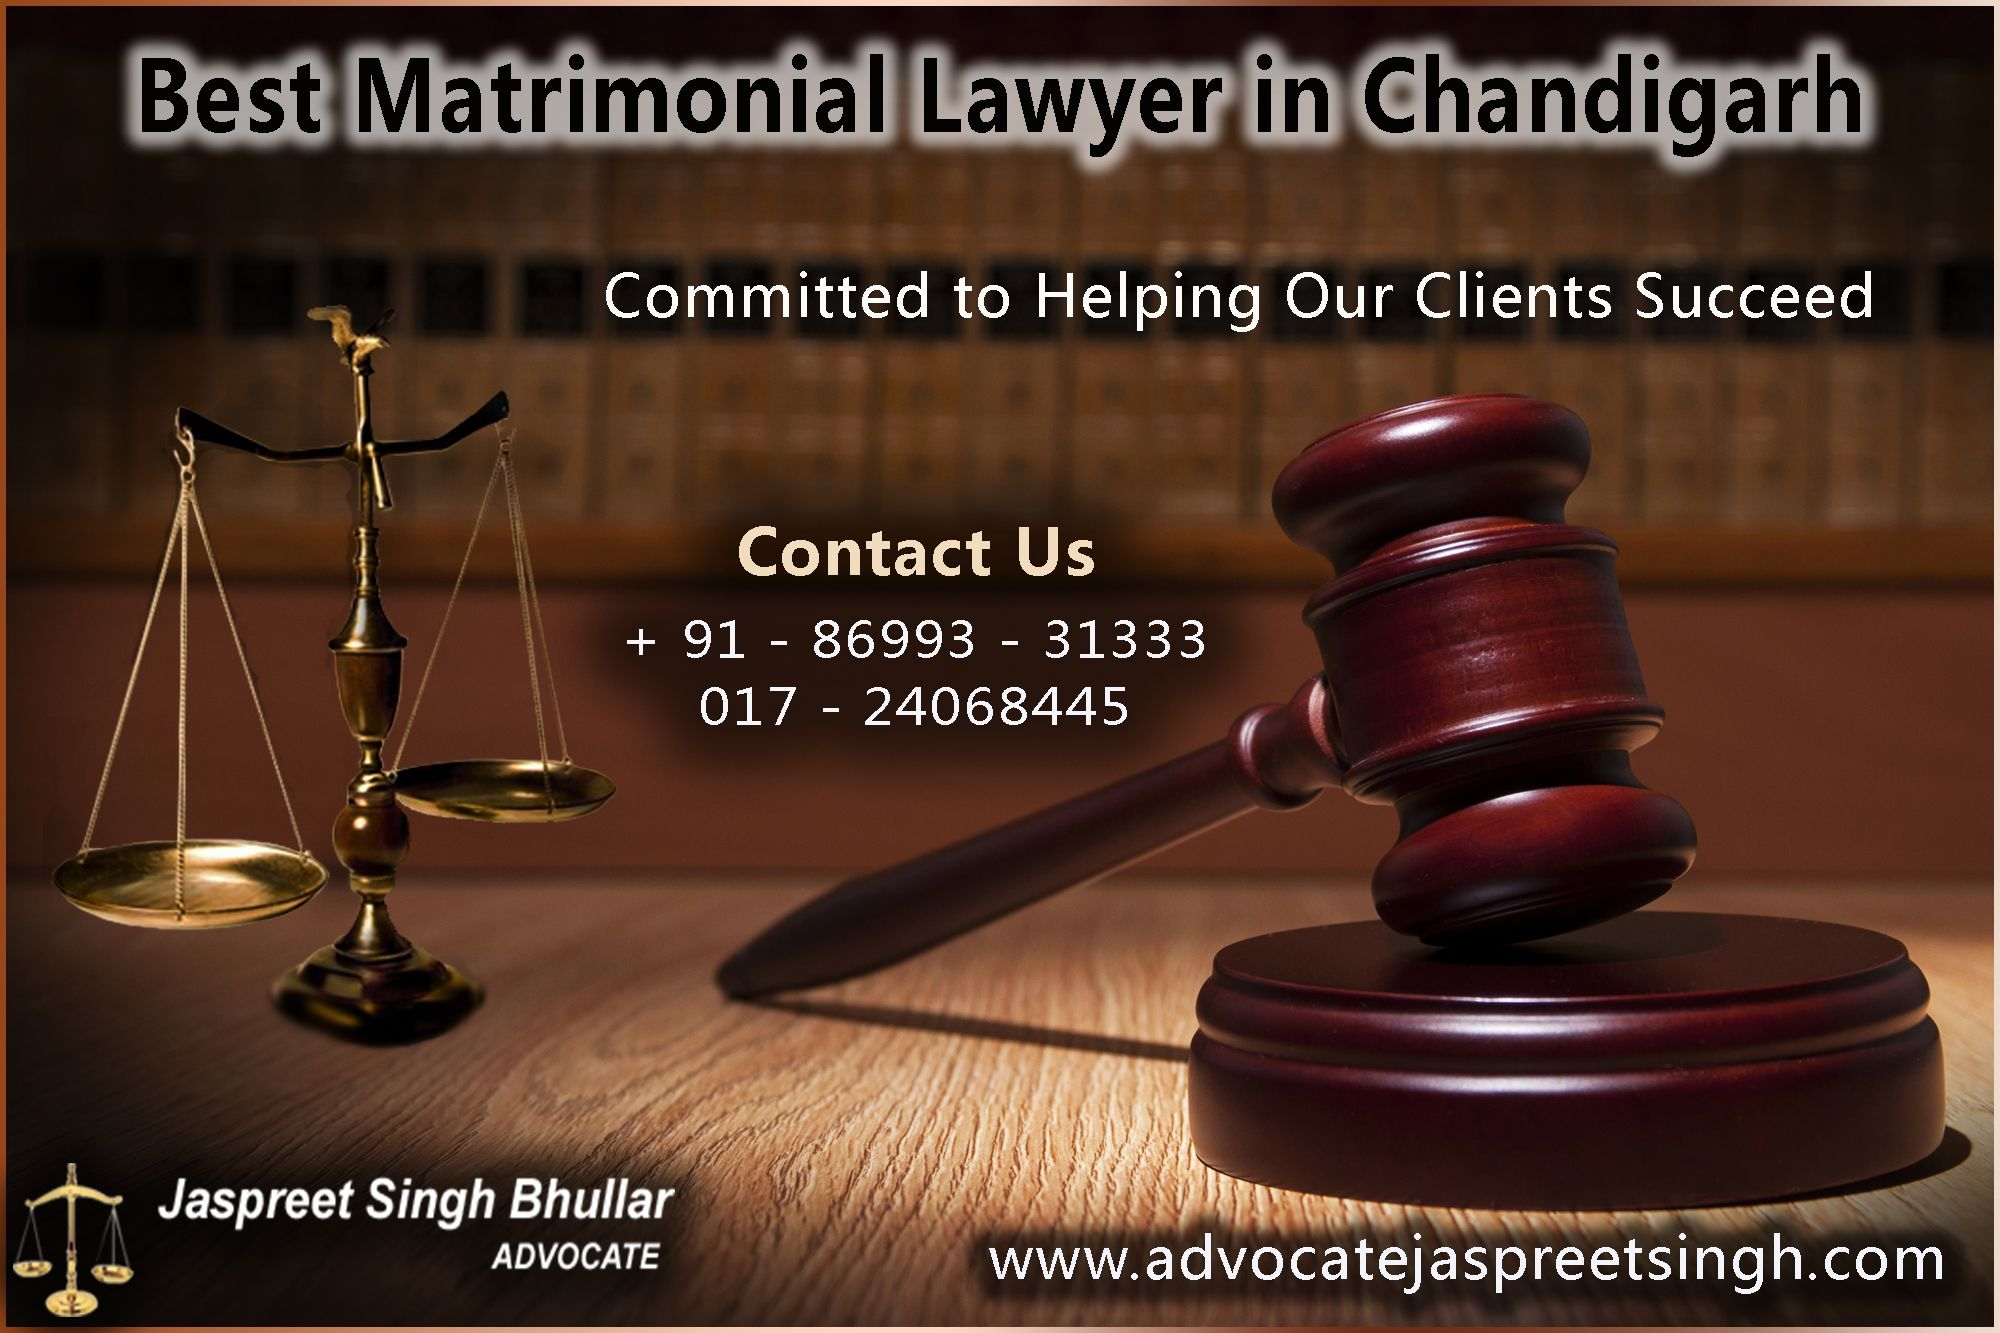 Best Matrimonial Lawyer In Chandigarh Committed To Helping Our